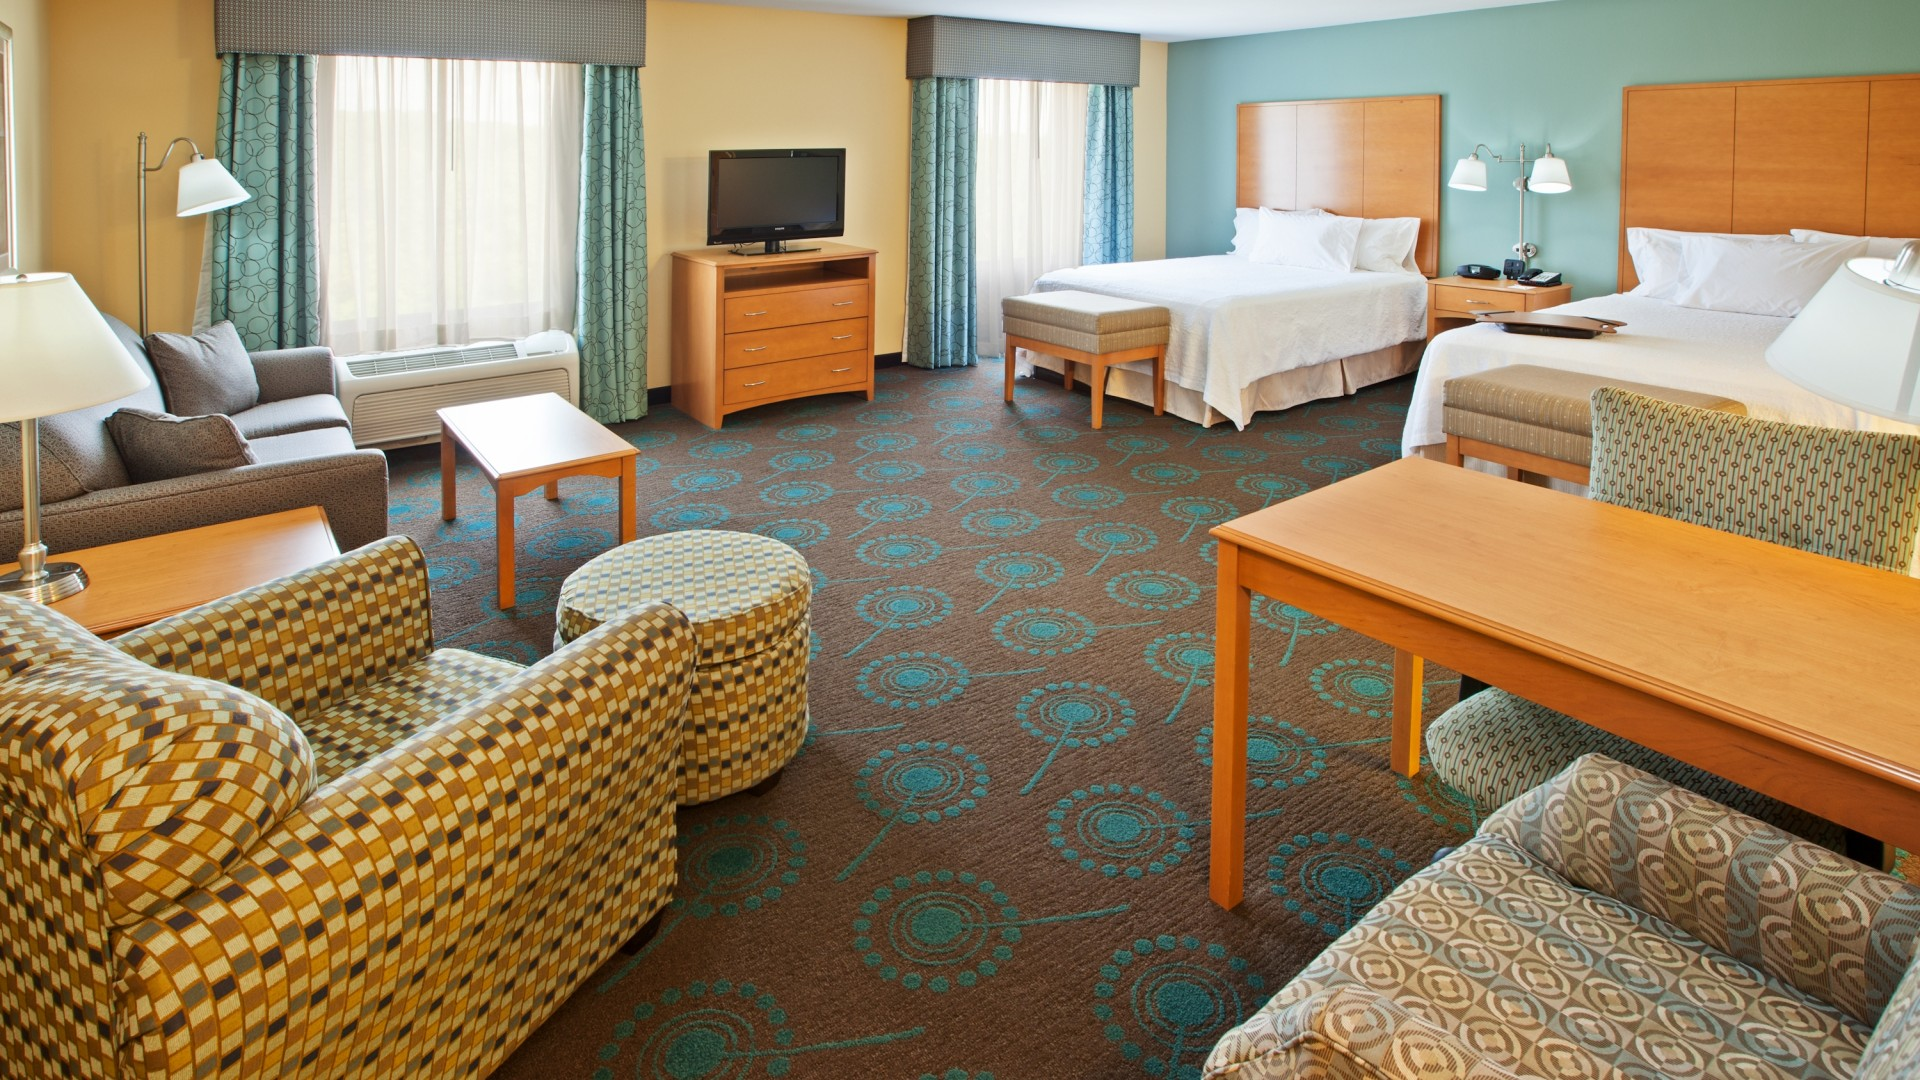 Hotel rooms in the Canton, Stark County Ohio area